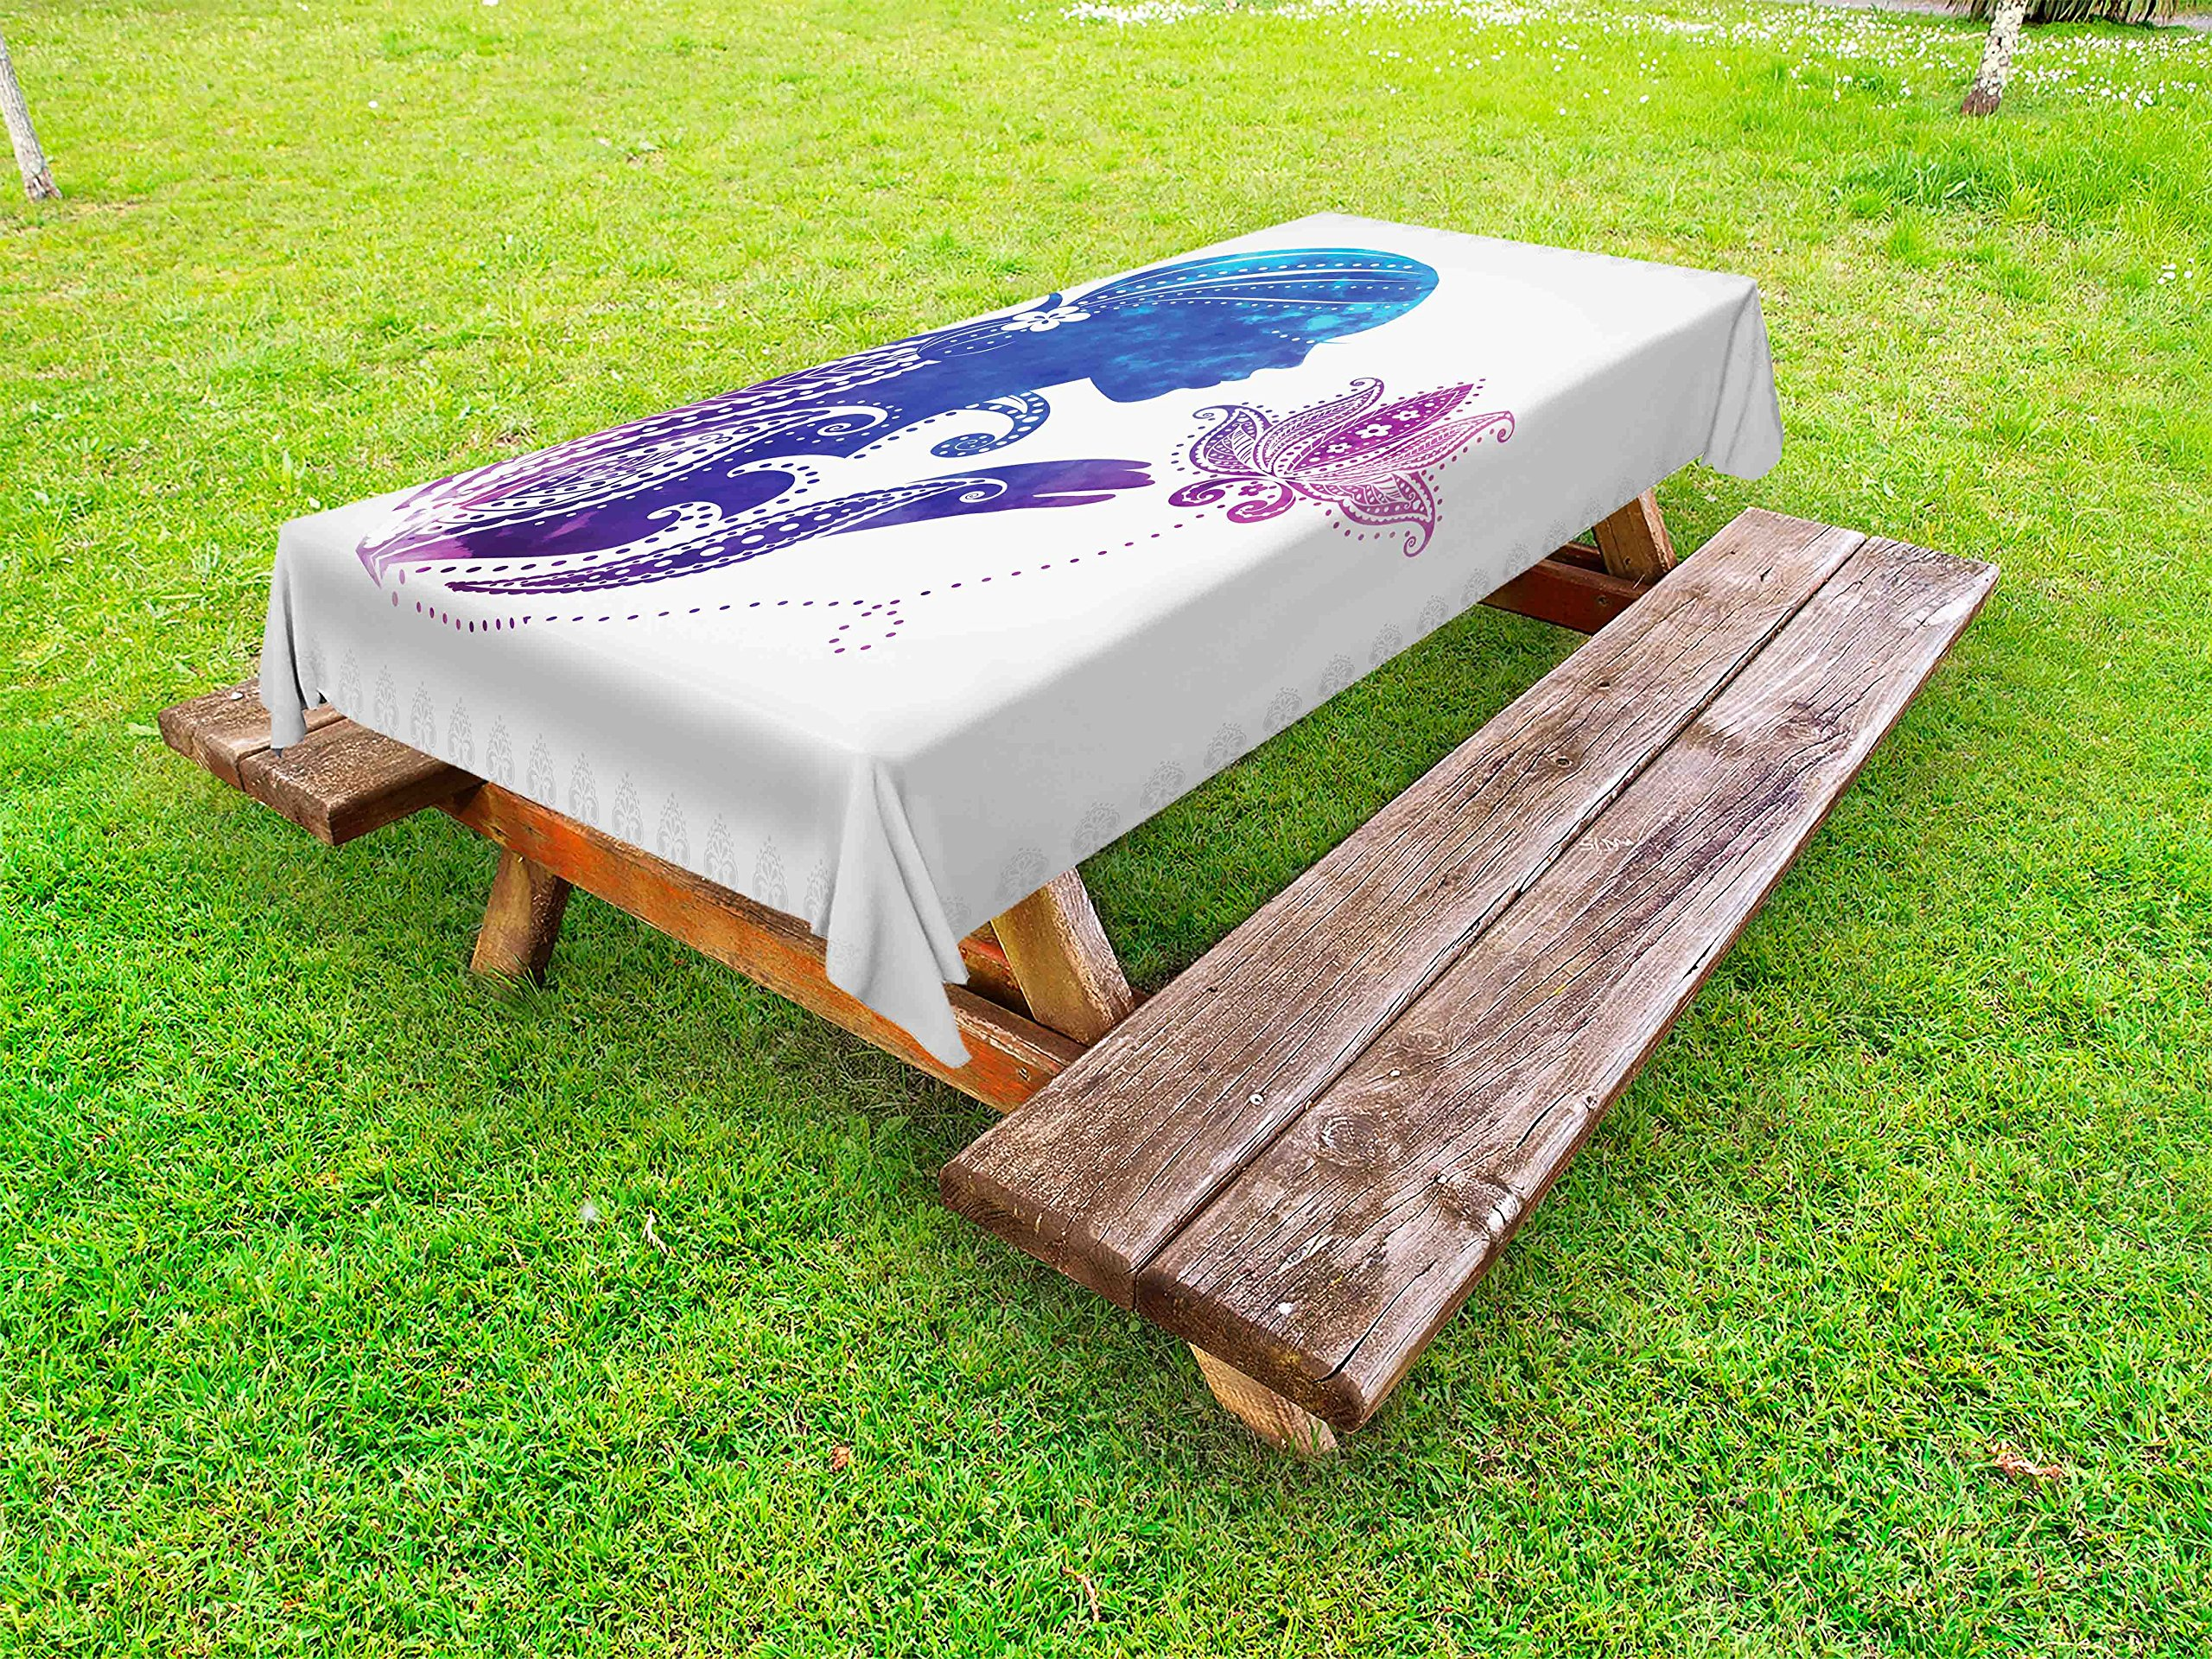 Ambesonne Teen Girls Outdoor Tablecloth, Girl's Silhouette with Flowers on Her Hair Floral Ornaments Meditation Spa Art, Decorative Washable Picnic Table Cloth, 58 X 120 inches, Purple Blue